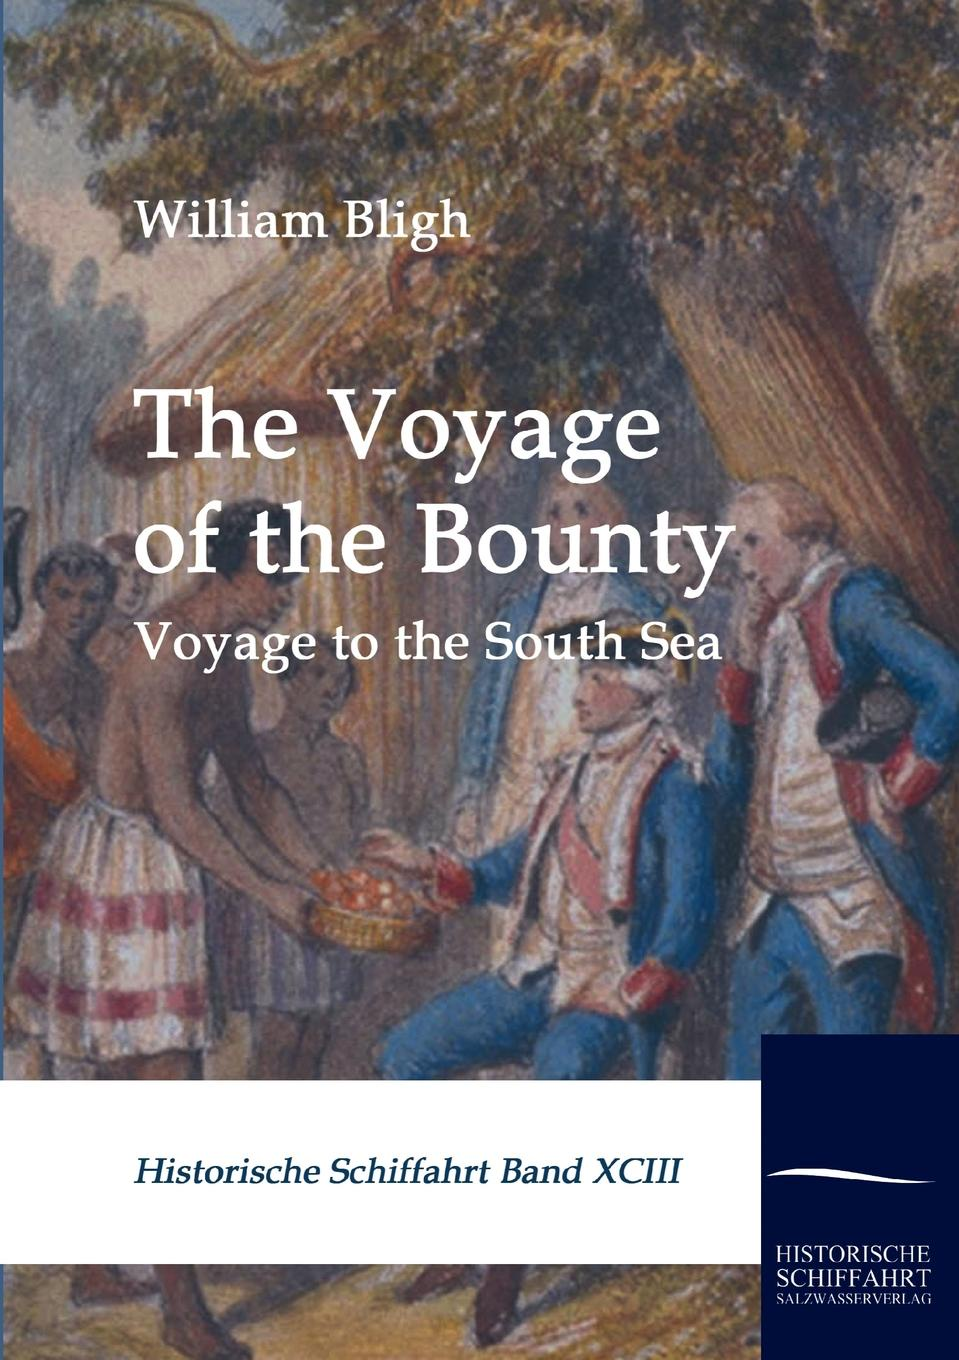 William Bligh The Voyage of the Bounty